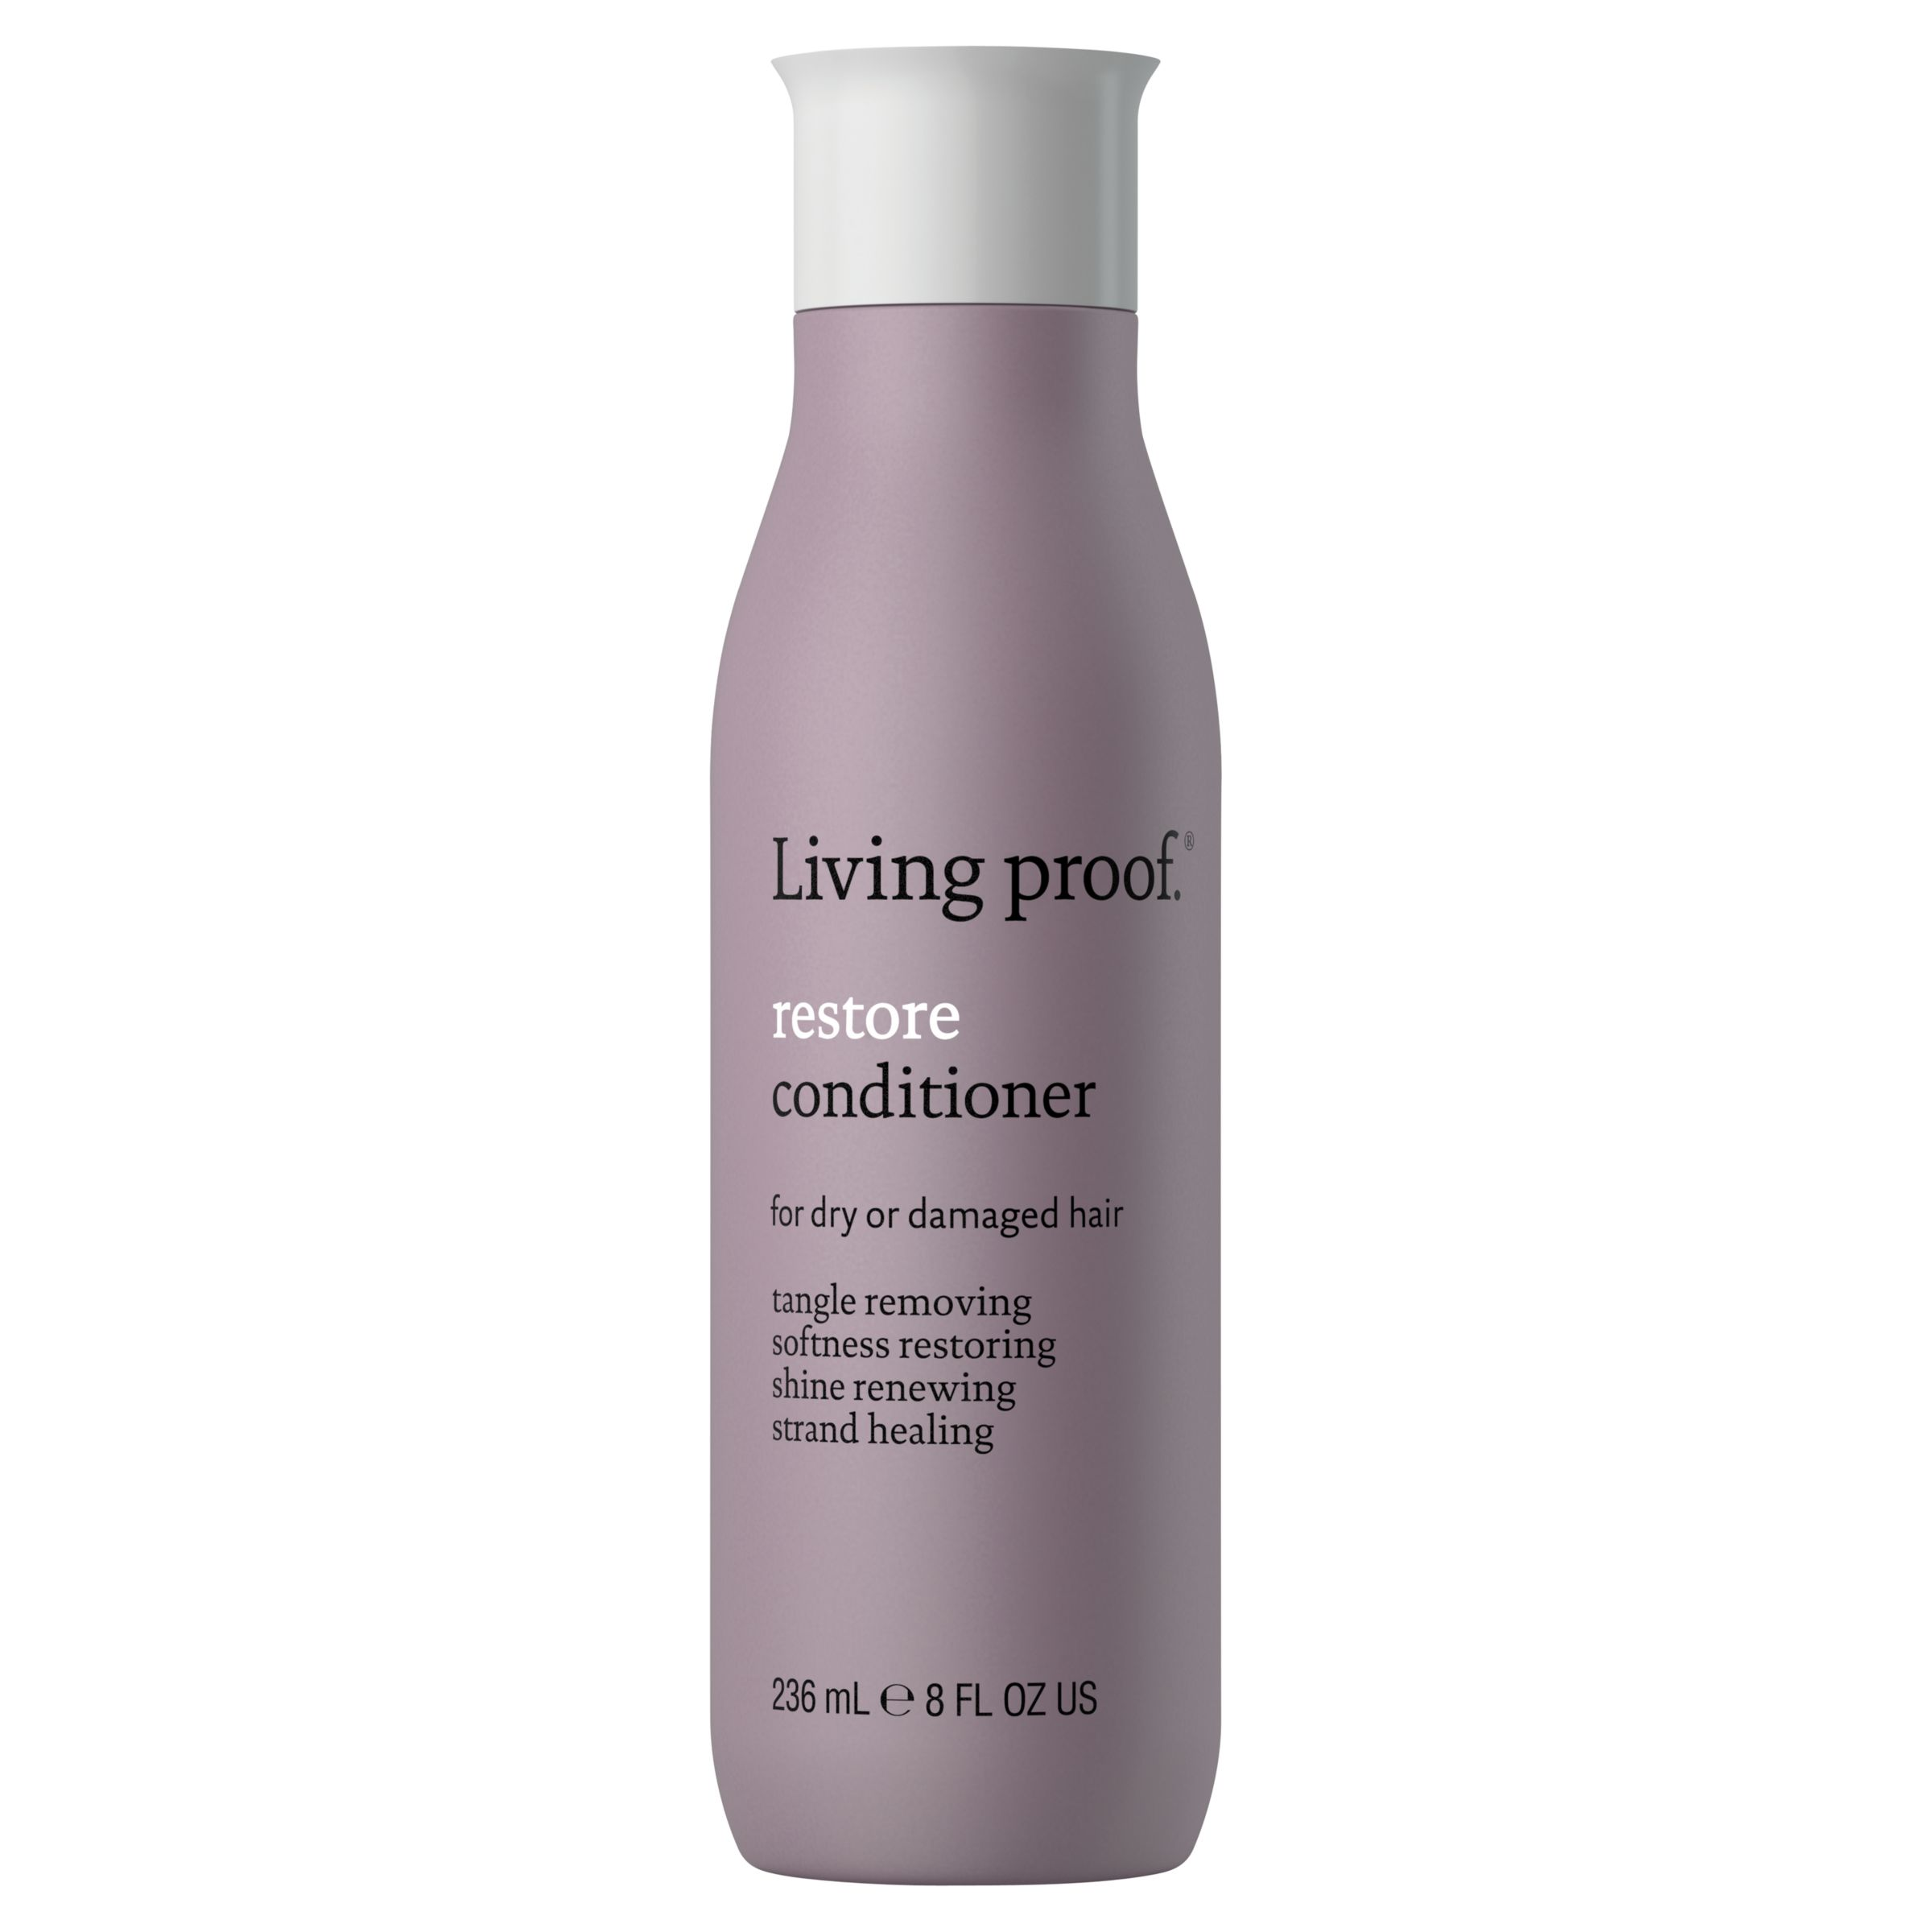 Living Proof Living Proof Restore Conditioner, 236ml